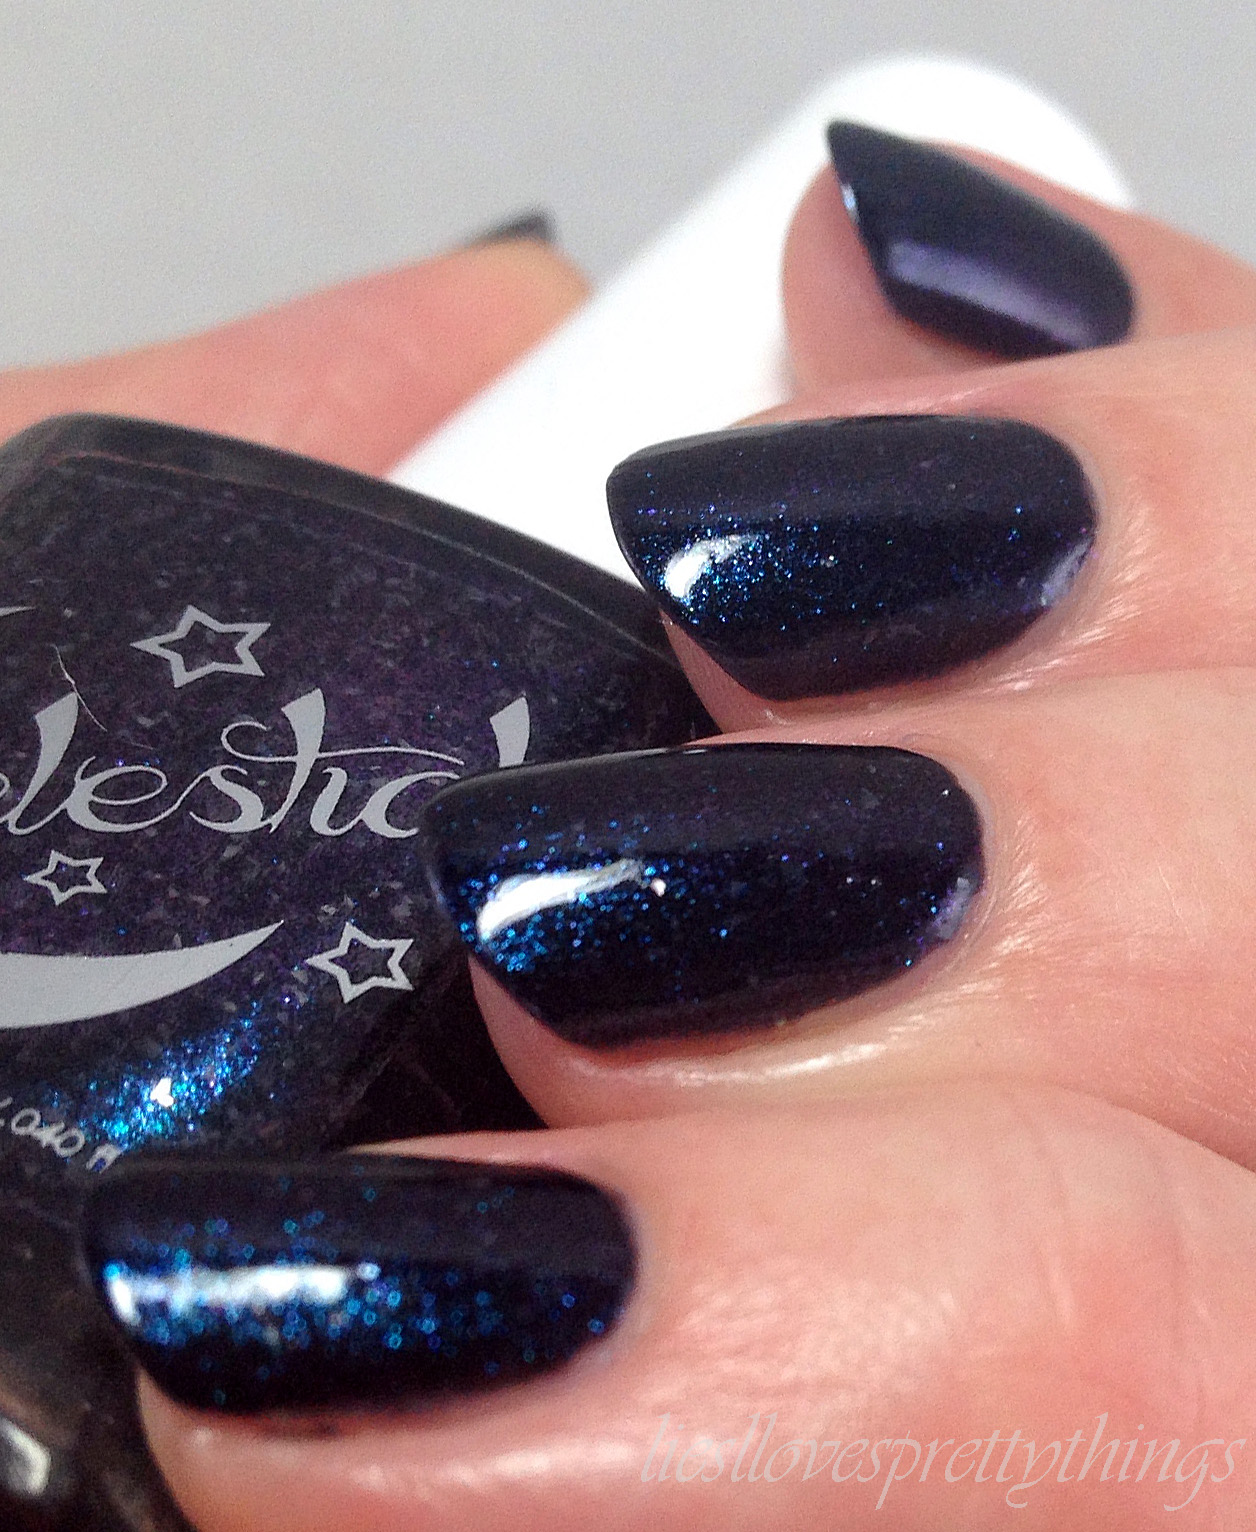 Celestial Bon Temps The First Taste swatch and review